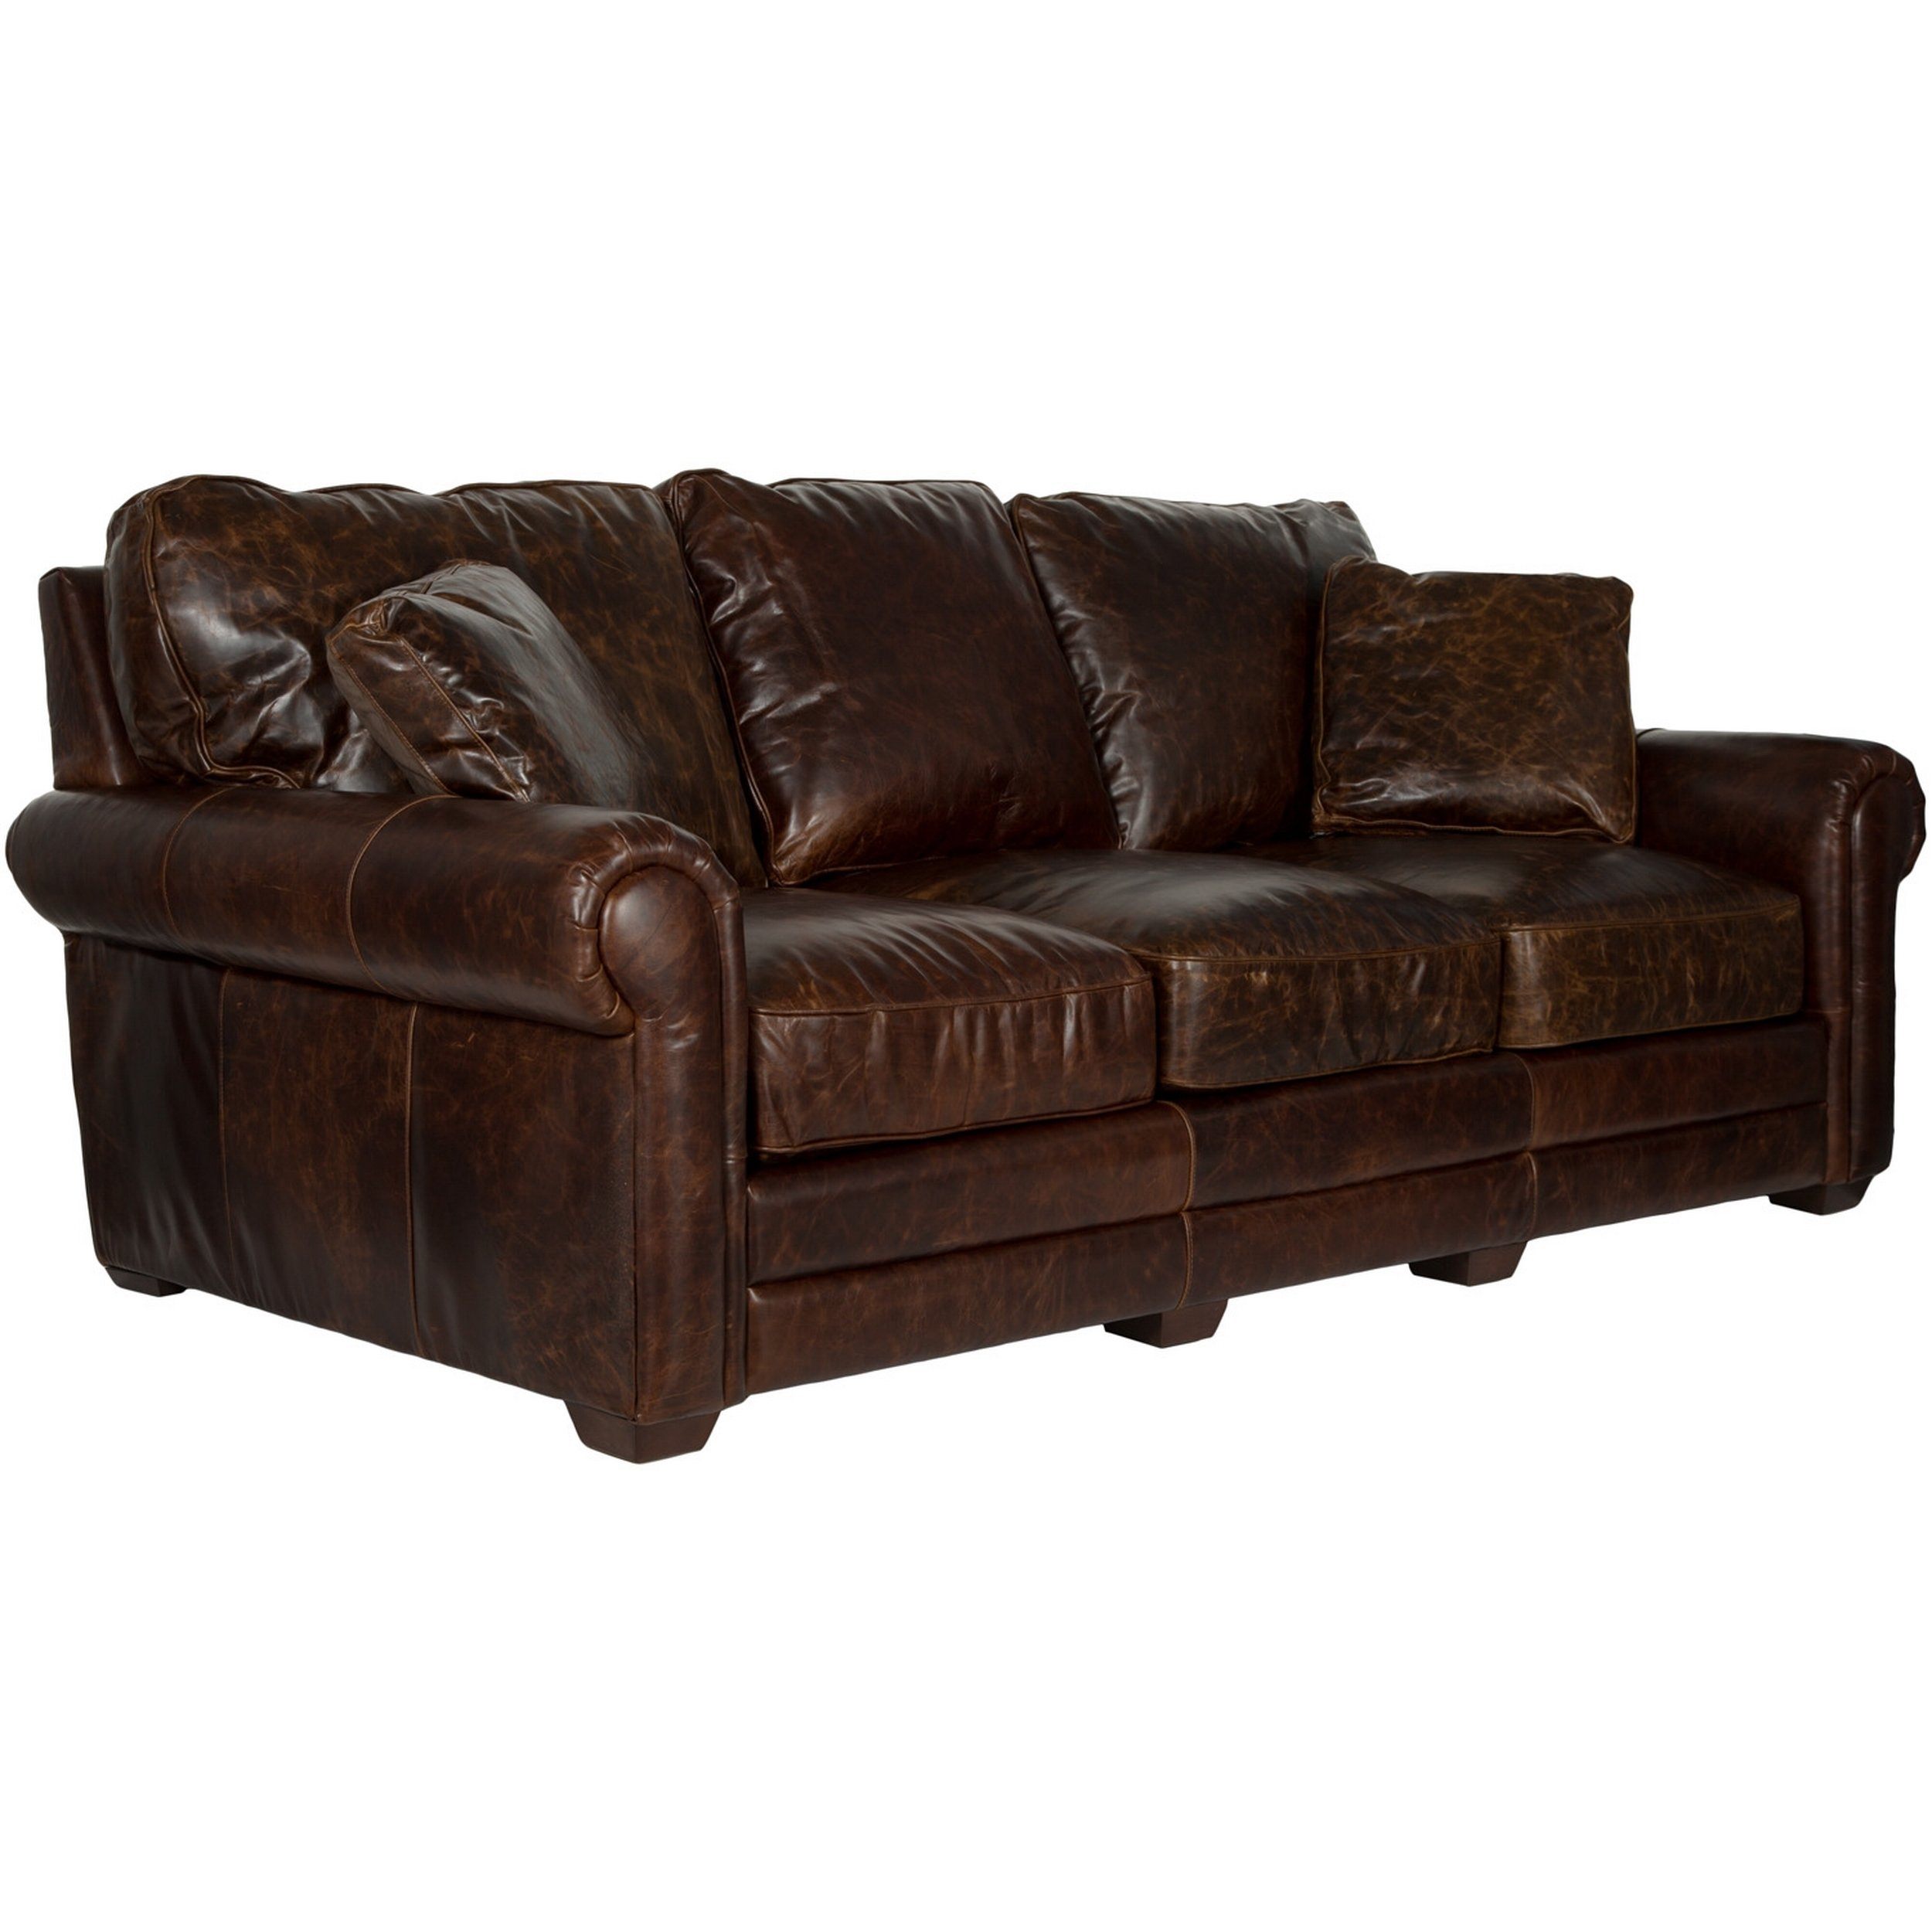 Shop Safavieh Couture High Line Collection Walter Cocoa Leather Sofa Pertaining To Walter Leather Sofa Chairs (Image 9 of 20)